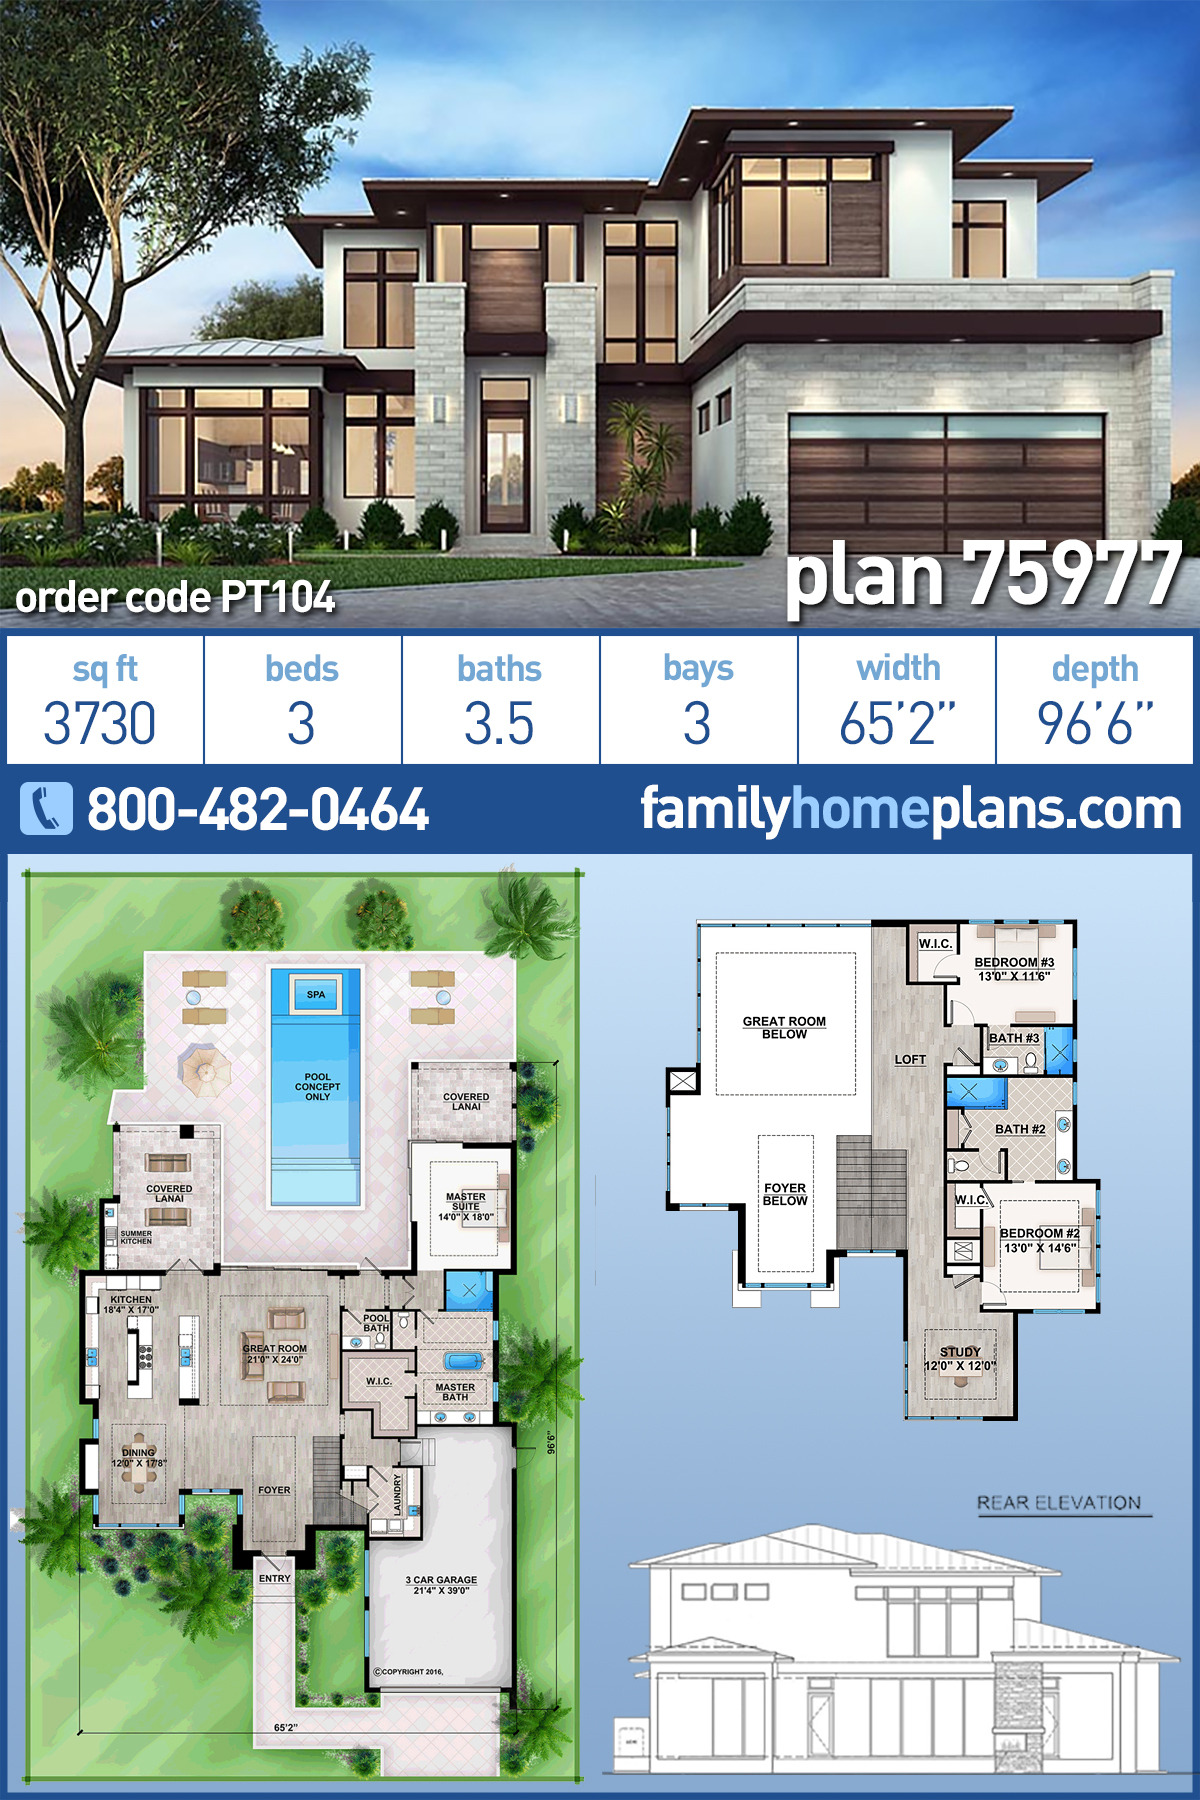 Modern House Floor Plans Unique Modern Style House Plan with 3 Bed 4 Bath 3 Car Garage